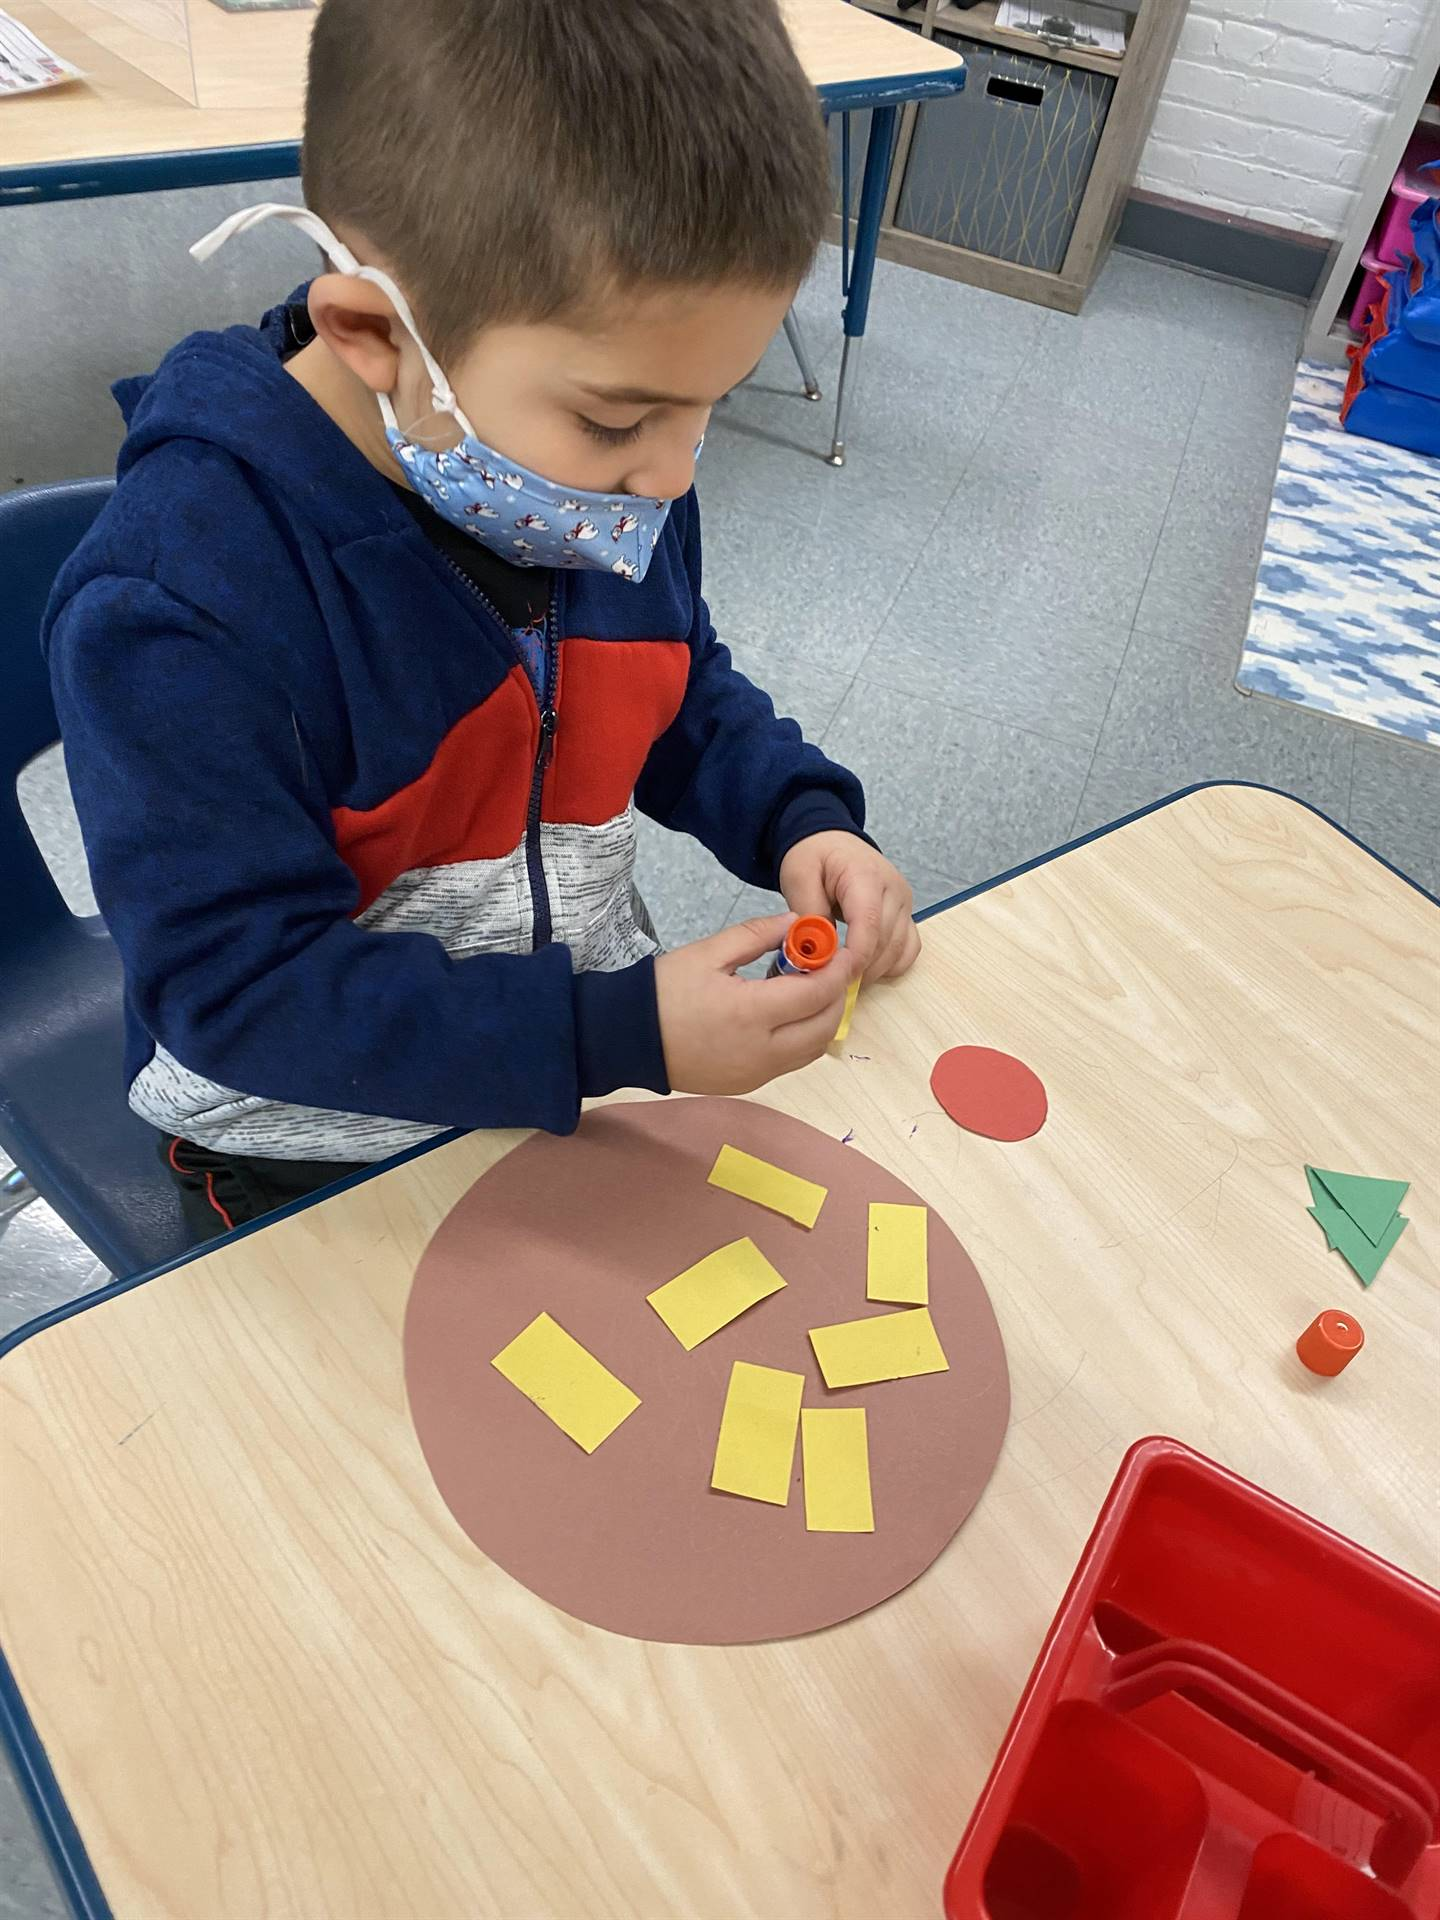 Student using yellow rectangles and other shapes to make his own pizza